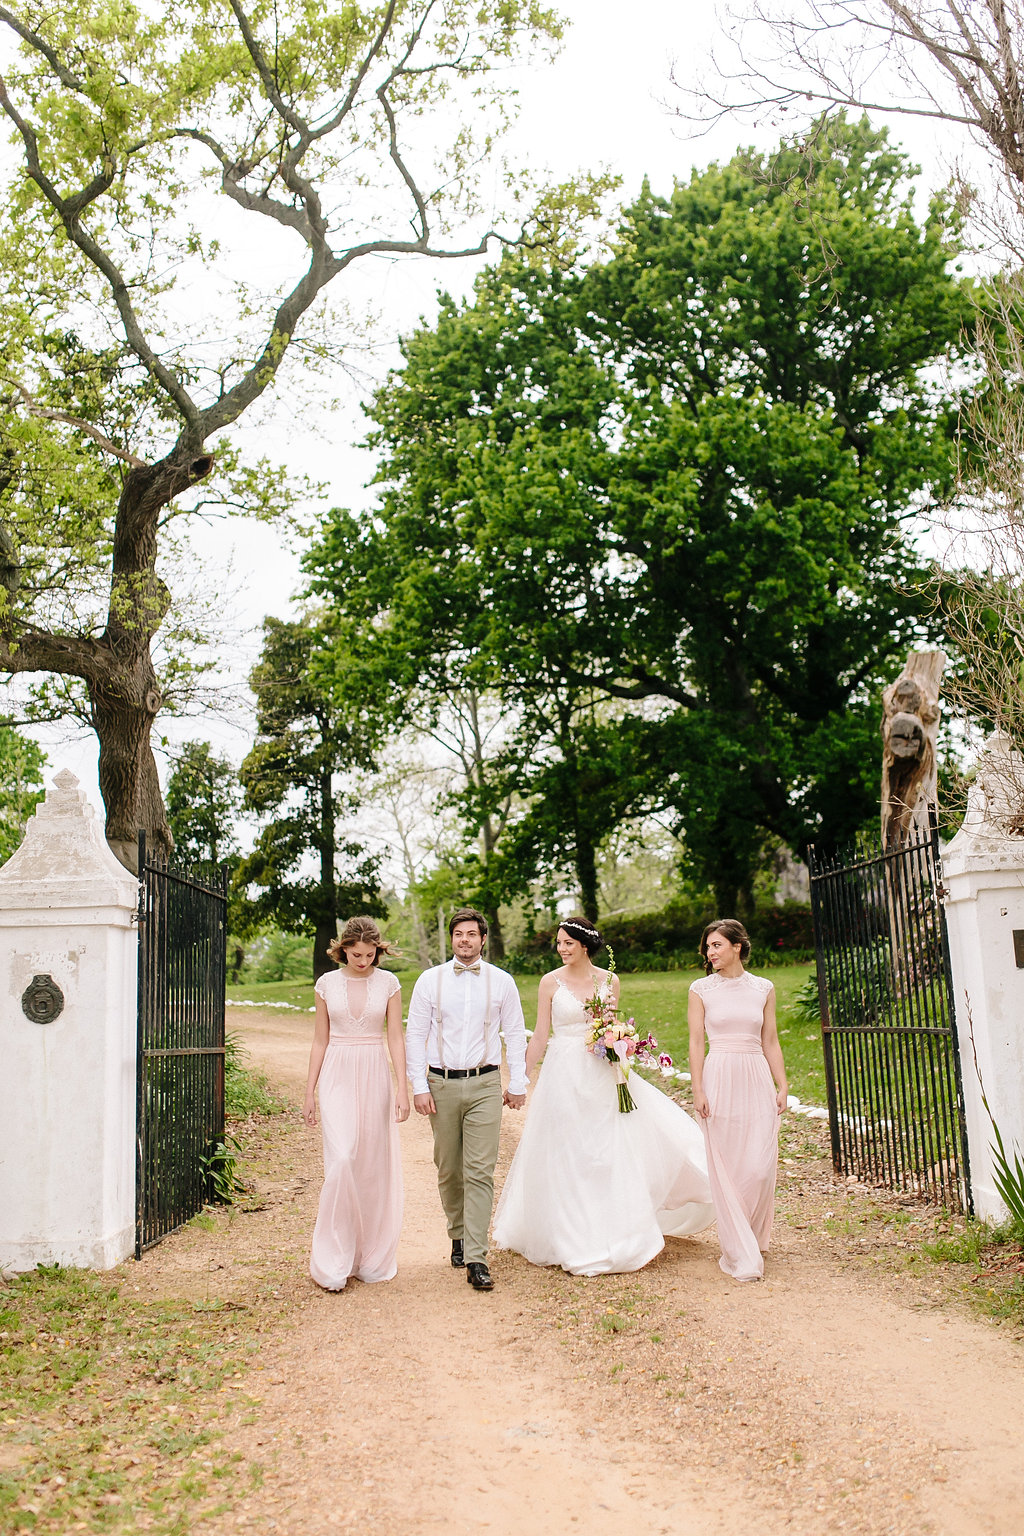 Elegant Wedding Party | Image: Nelani Van Zyl